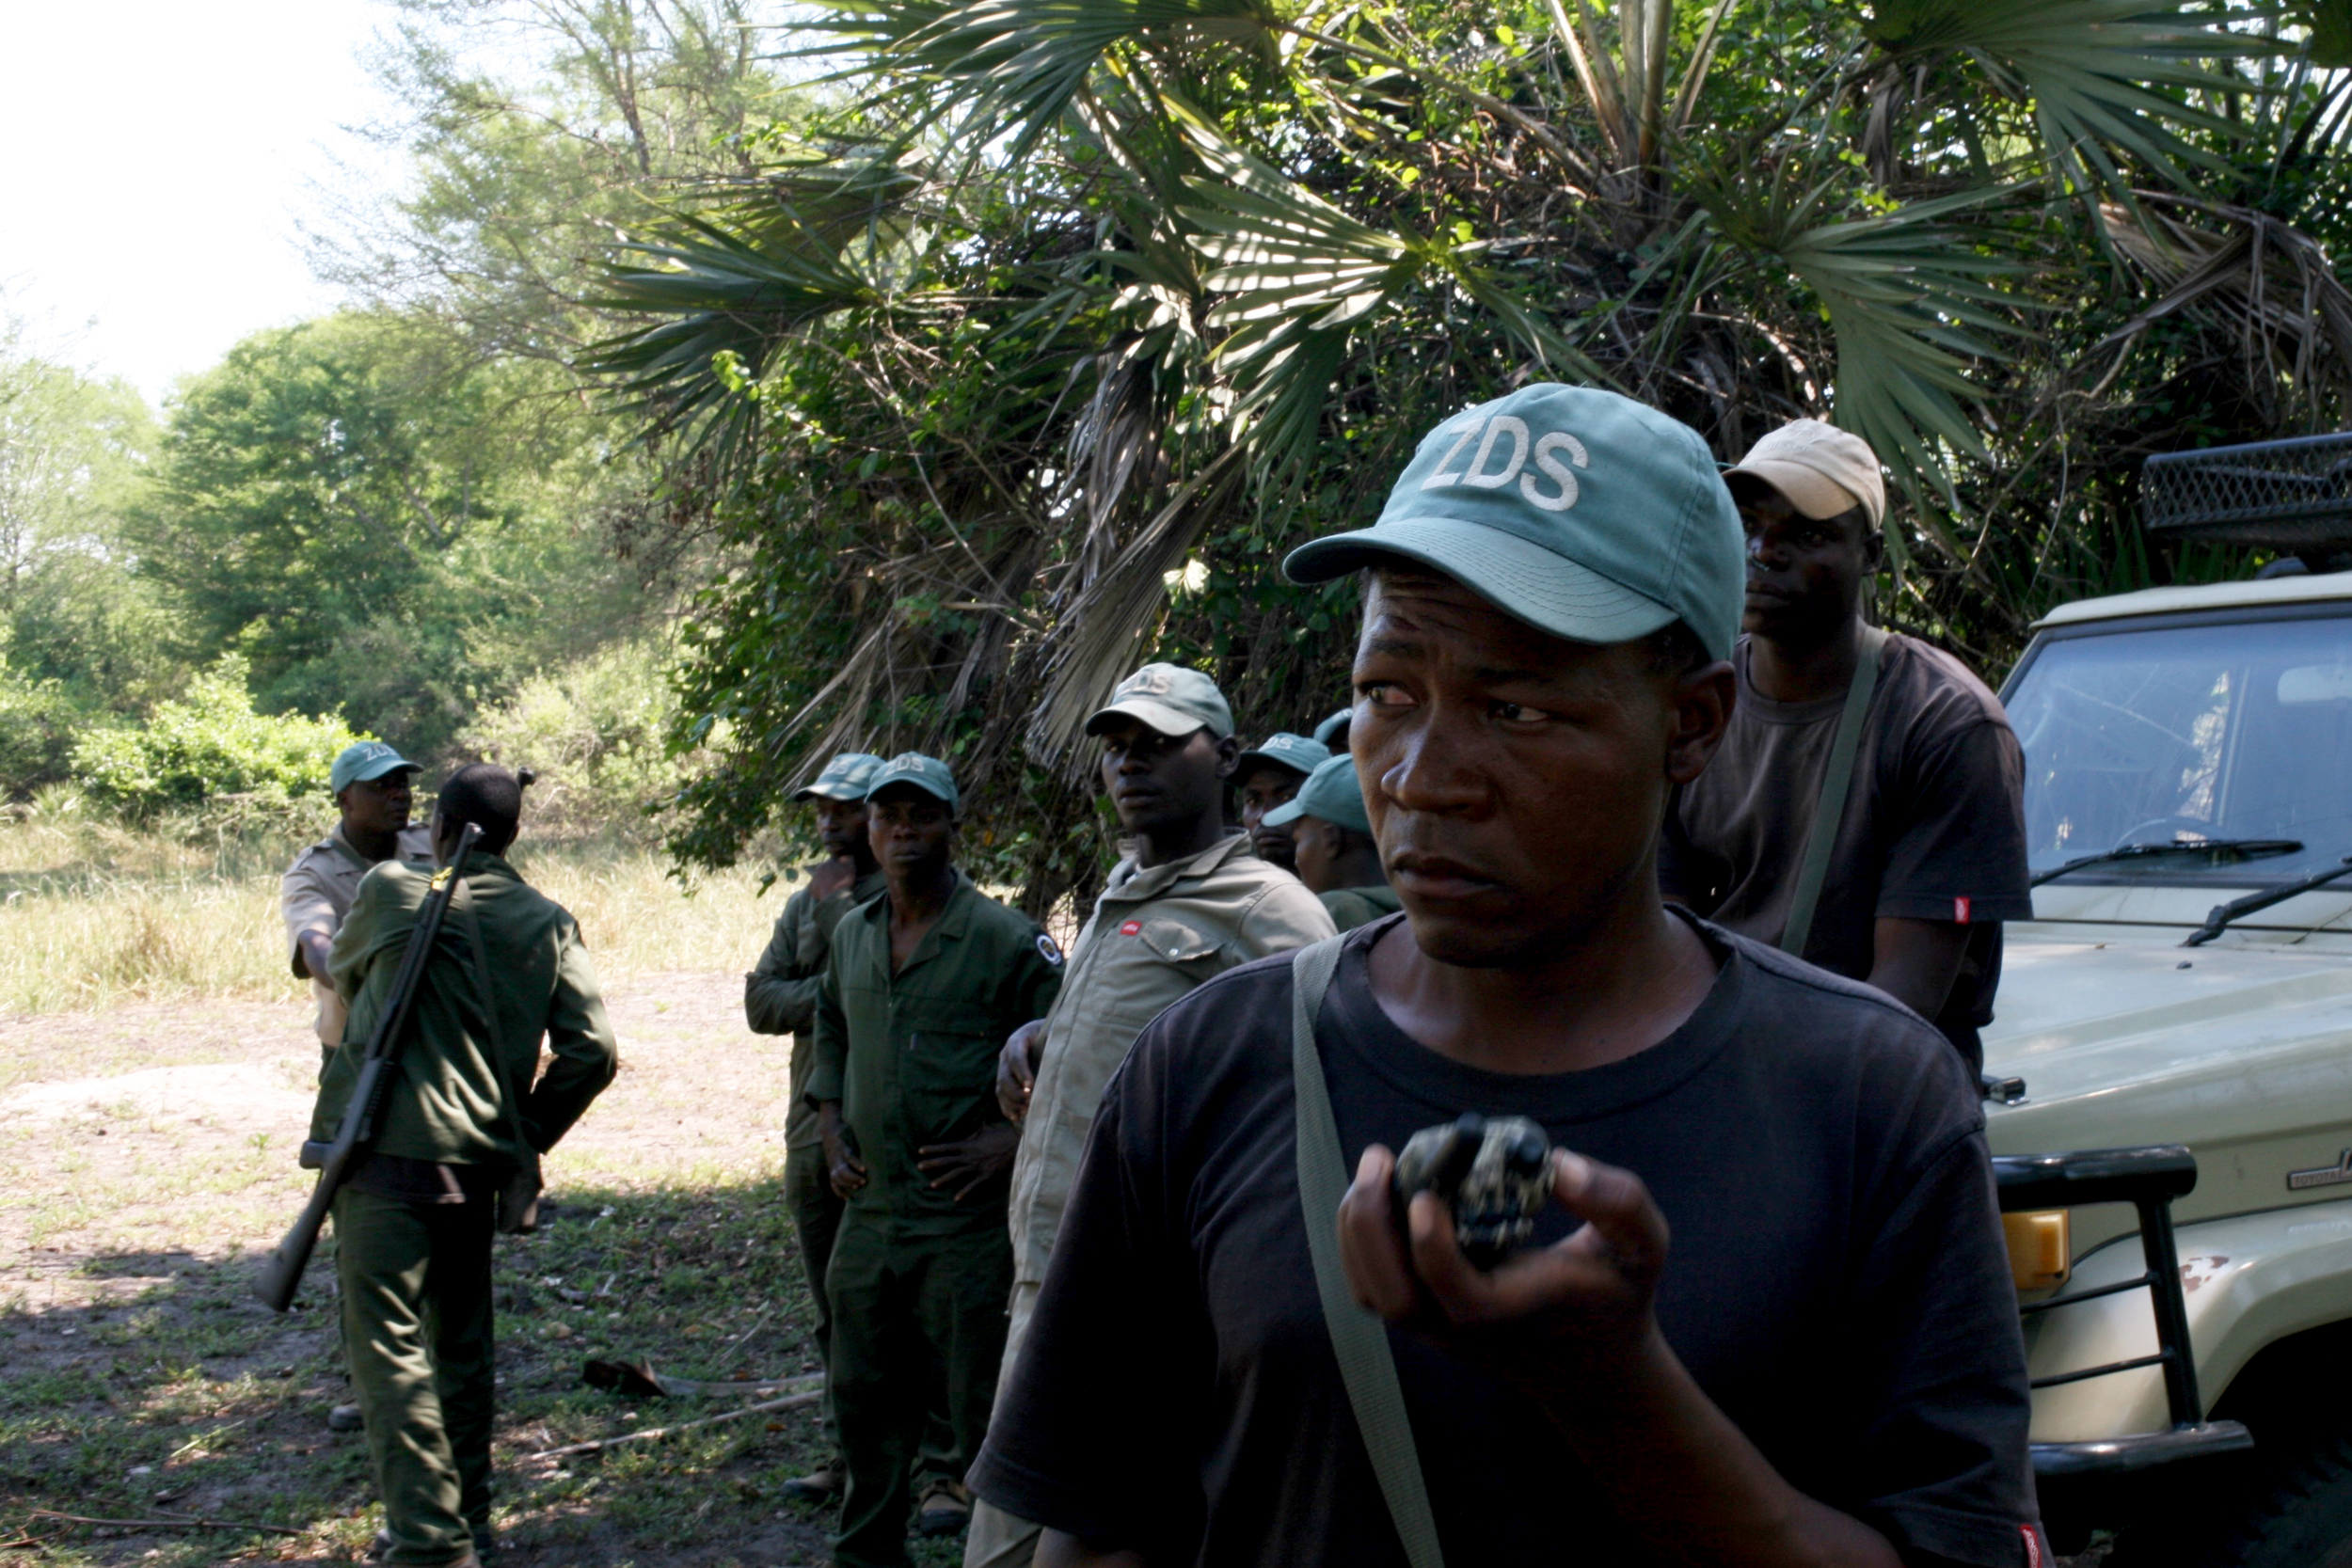 Members of an antipoaching squad employed by a private hunting concession in a wildlife reserve in Mozambique.LAURA KRANTZ